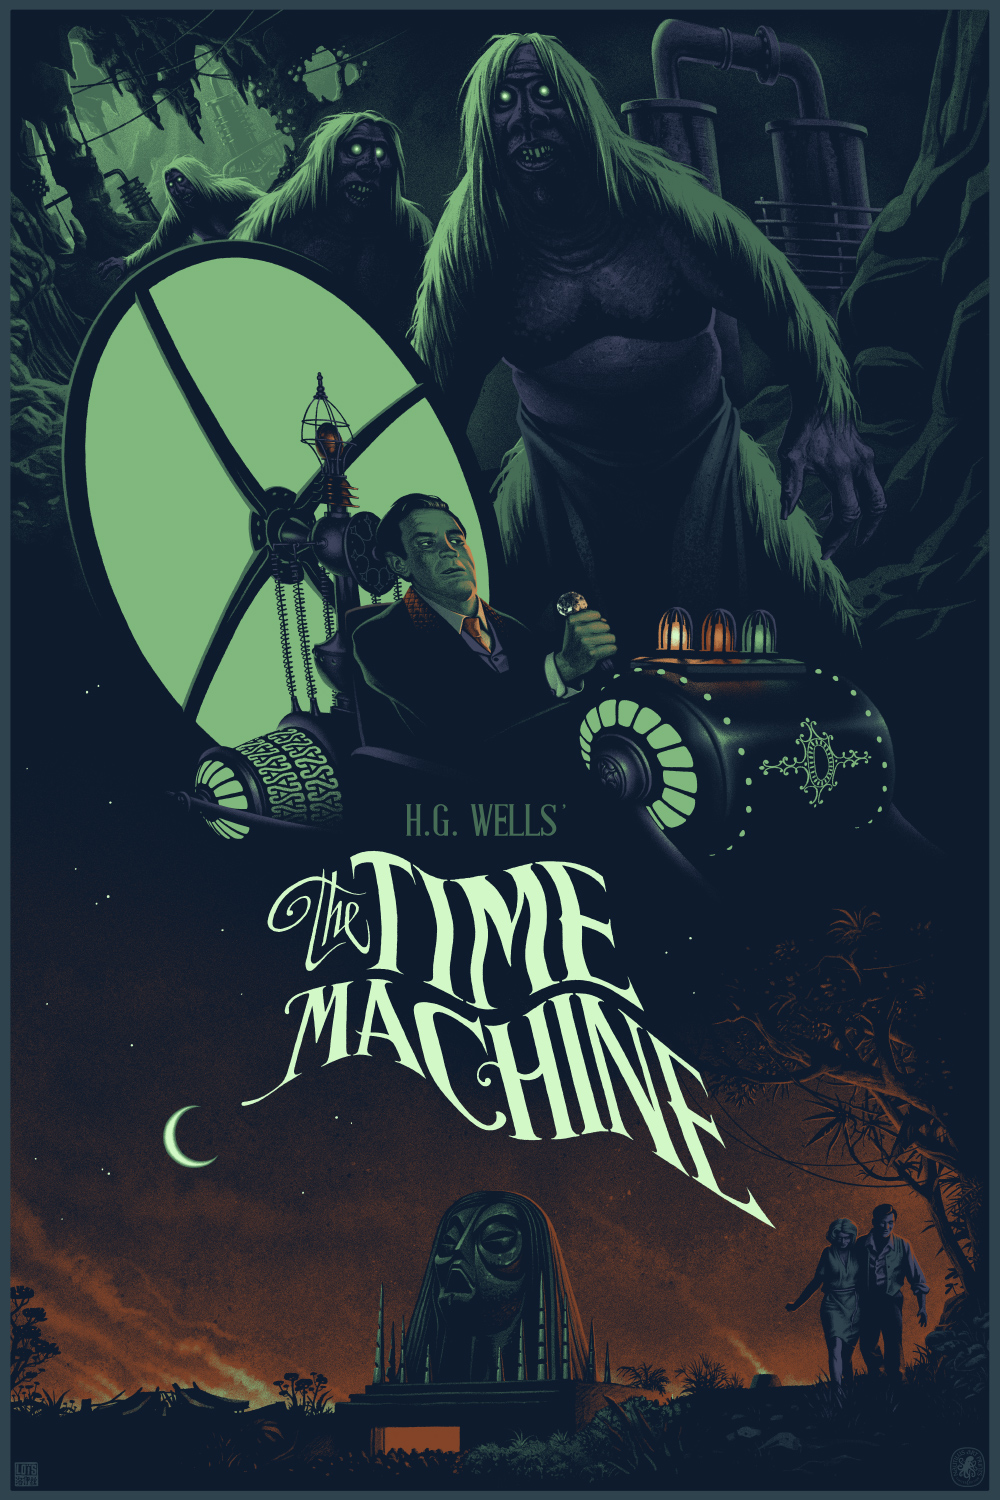 """The Time Machine"" regular version designed by Julien Loïs"